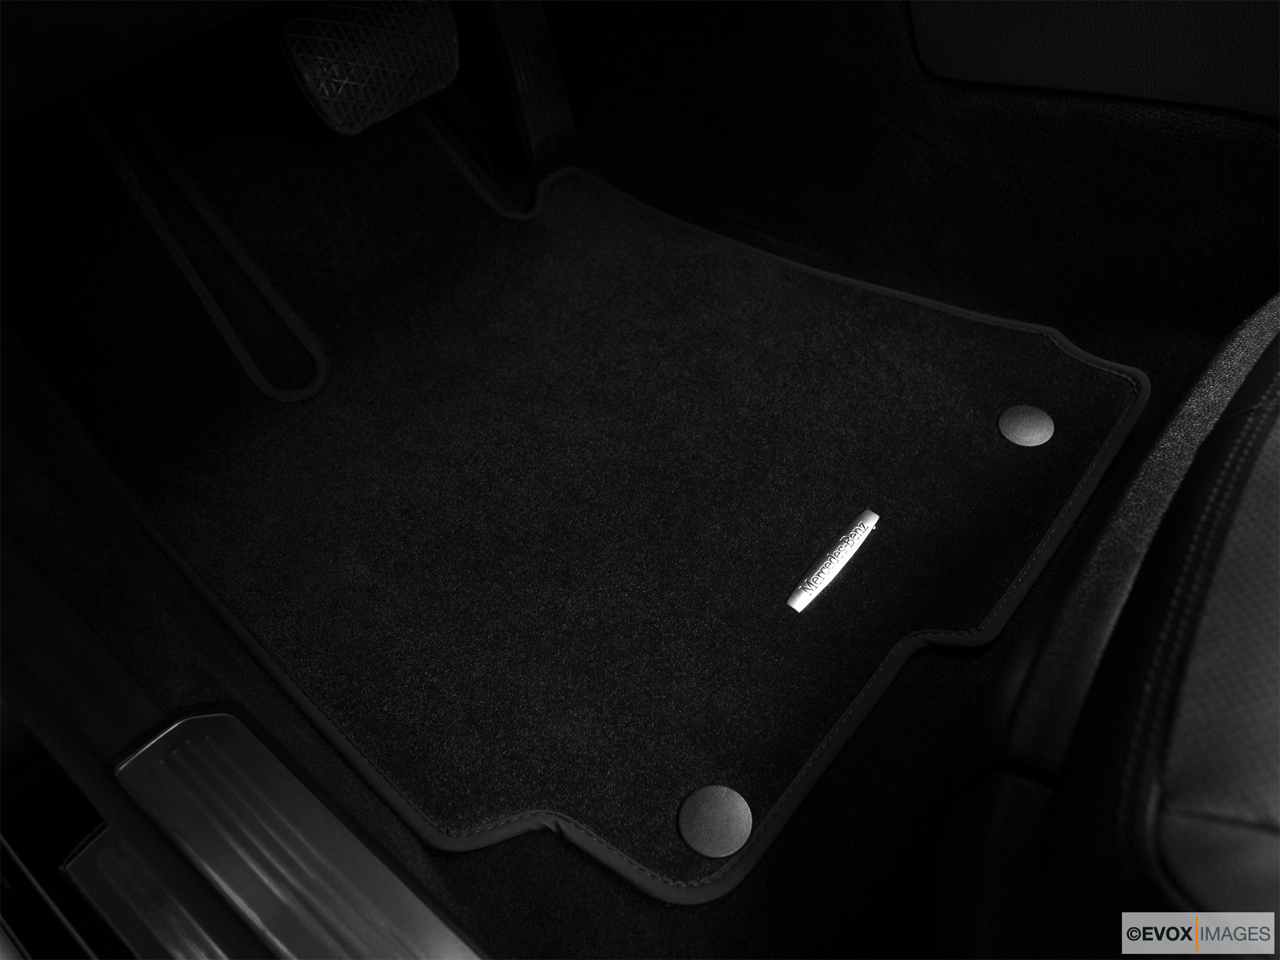 2010 Mercedes-Benz S-Class Hybrid S400 Driver's floor mat and pedals. Mid-seat level from outside looking in.